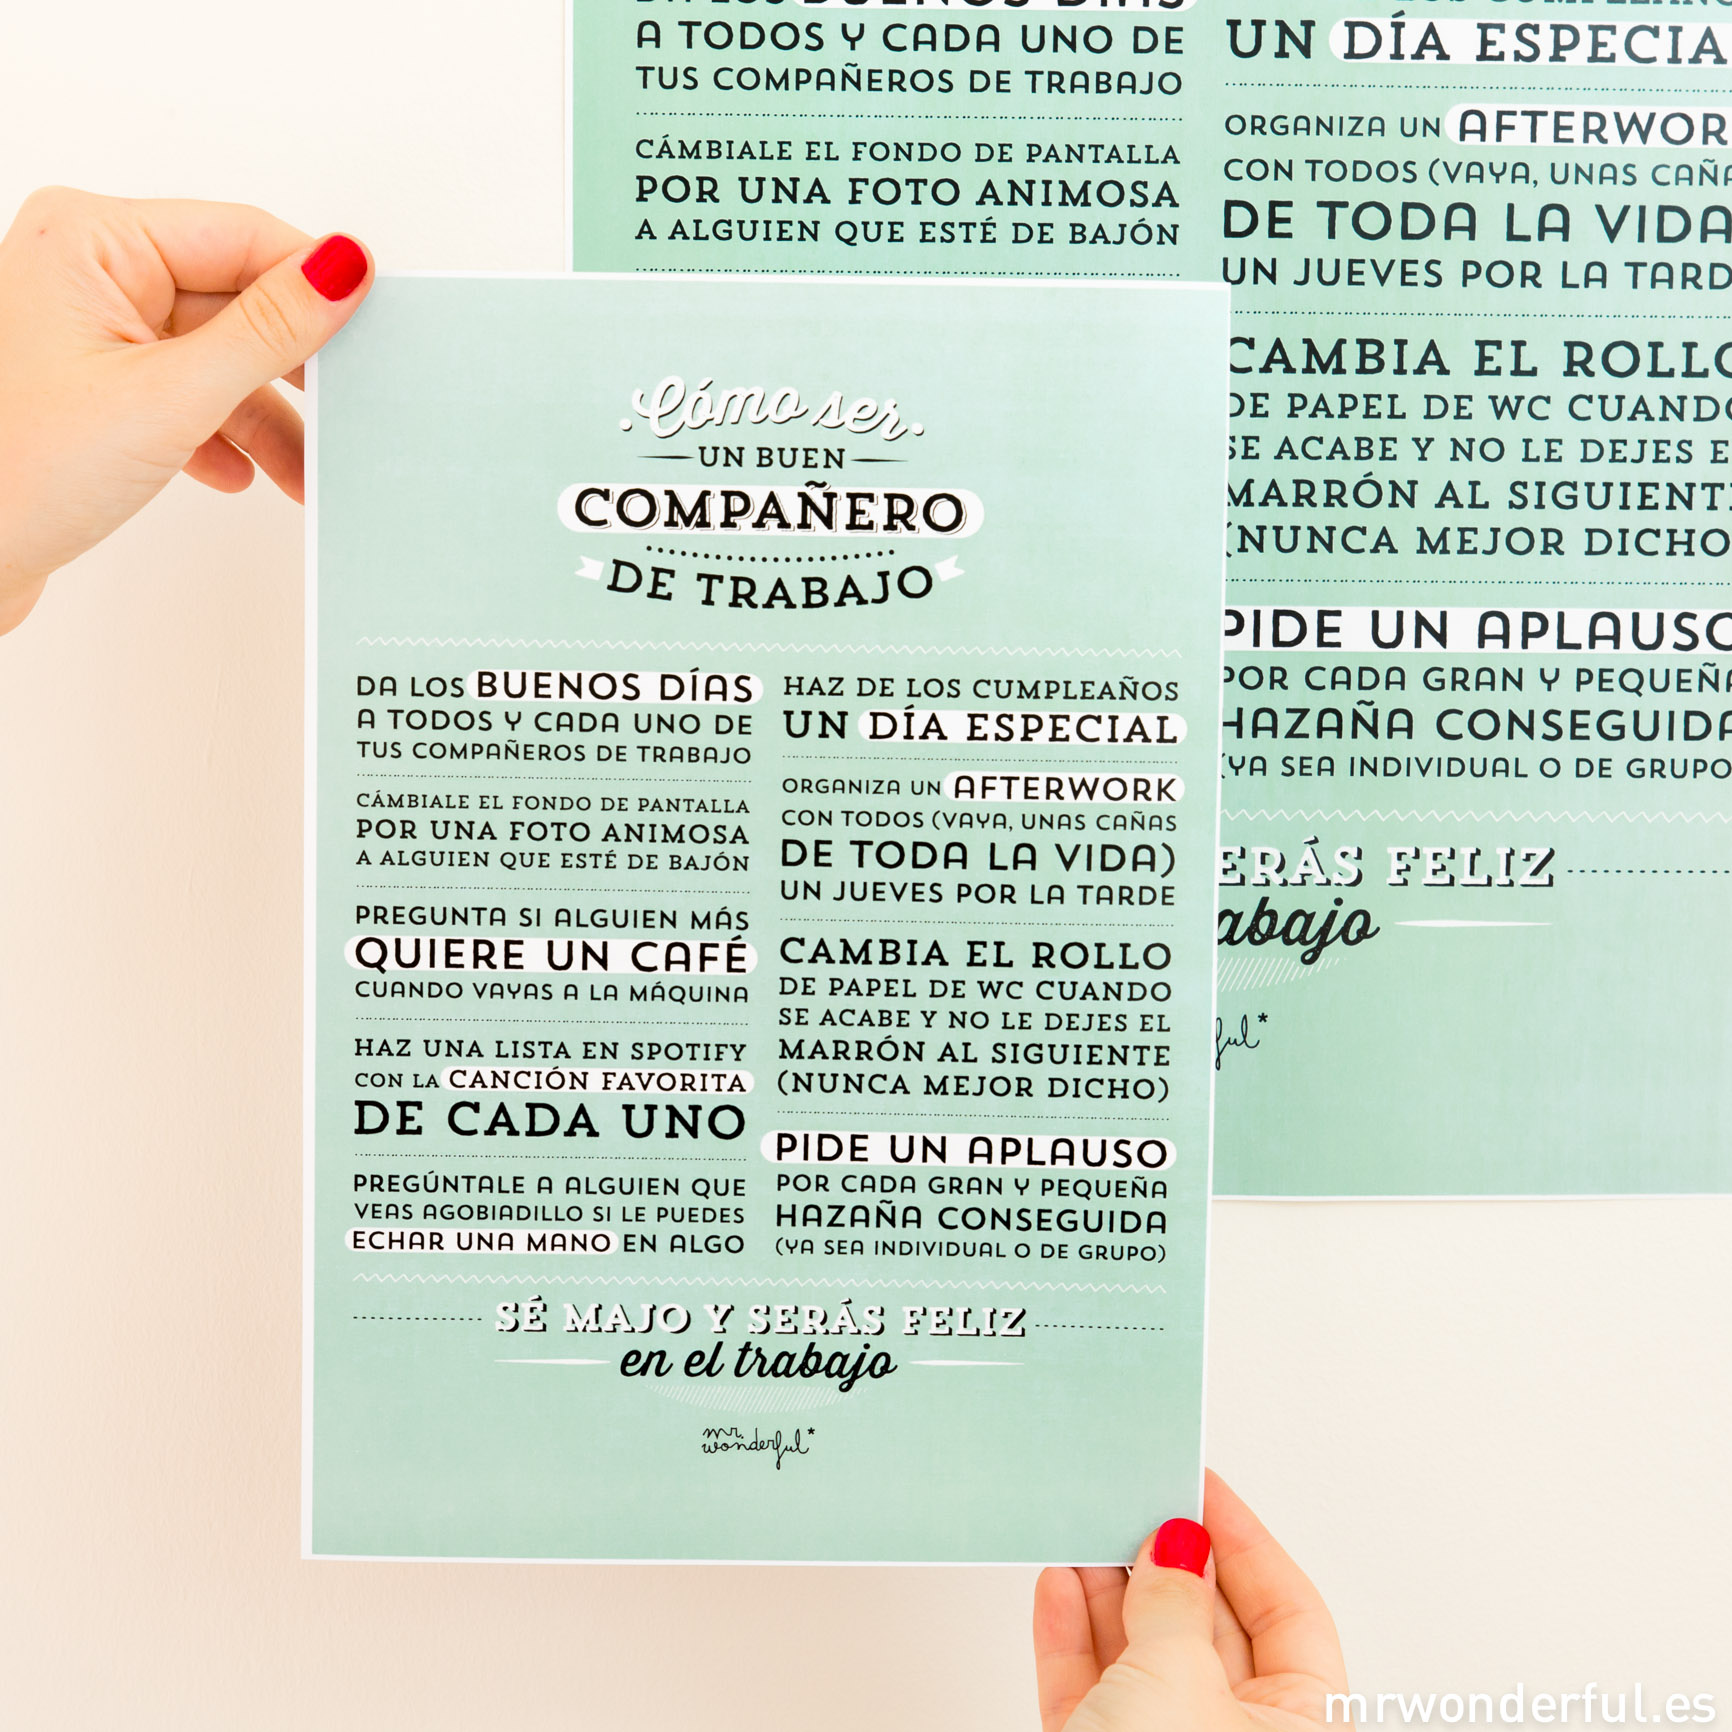 mrwonderful_descargables_decalogo-compi_2014-10